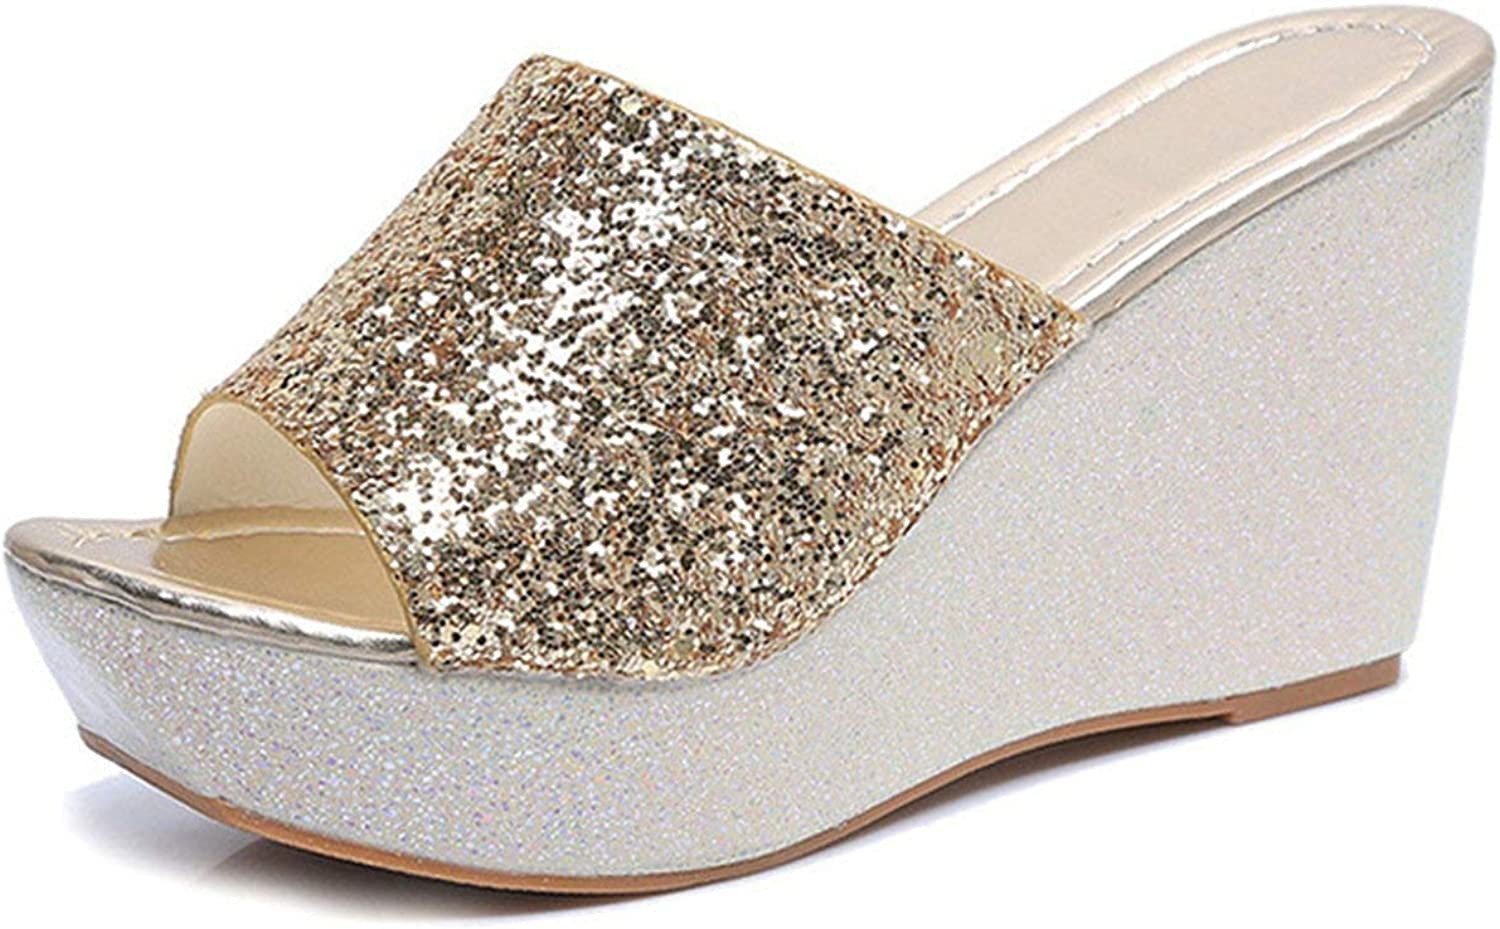 Women Summer Bling Slippers Fashion Glitter Platform High Heels Casual shoes Non Slip Outdoor Wedges Slides